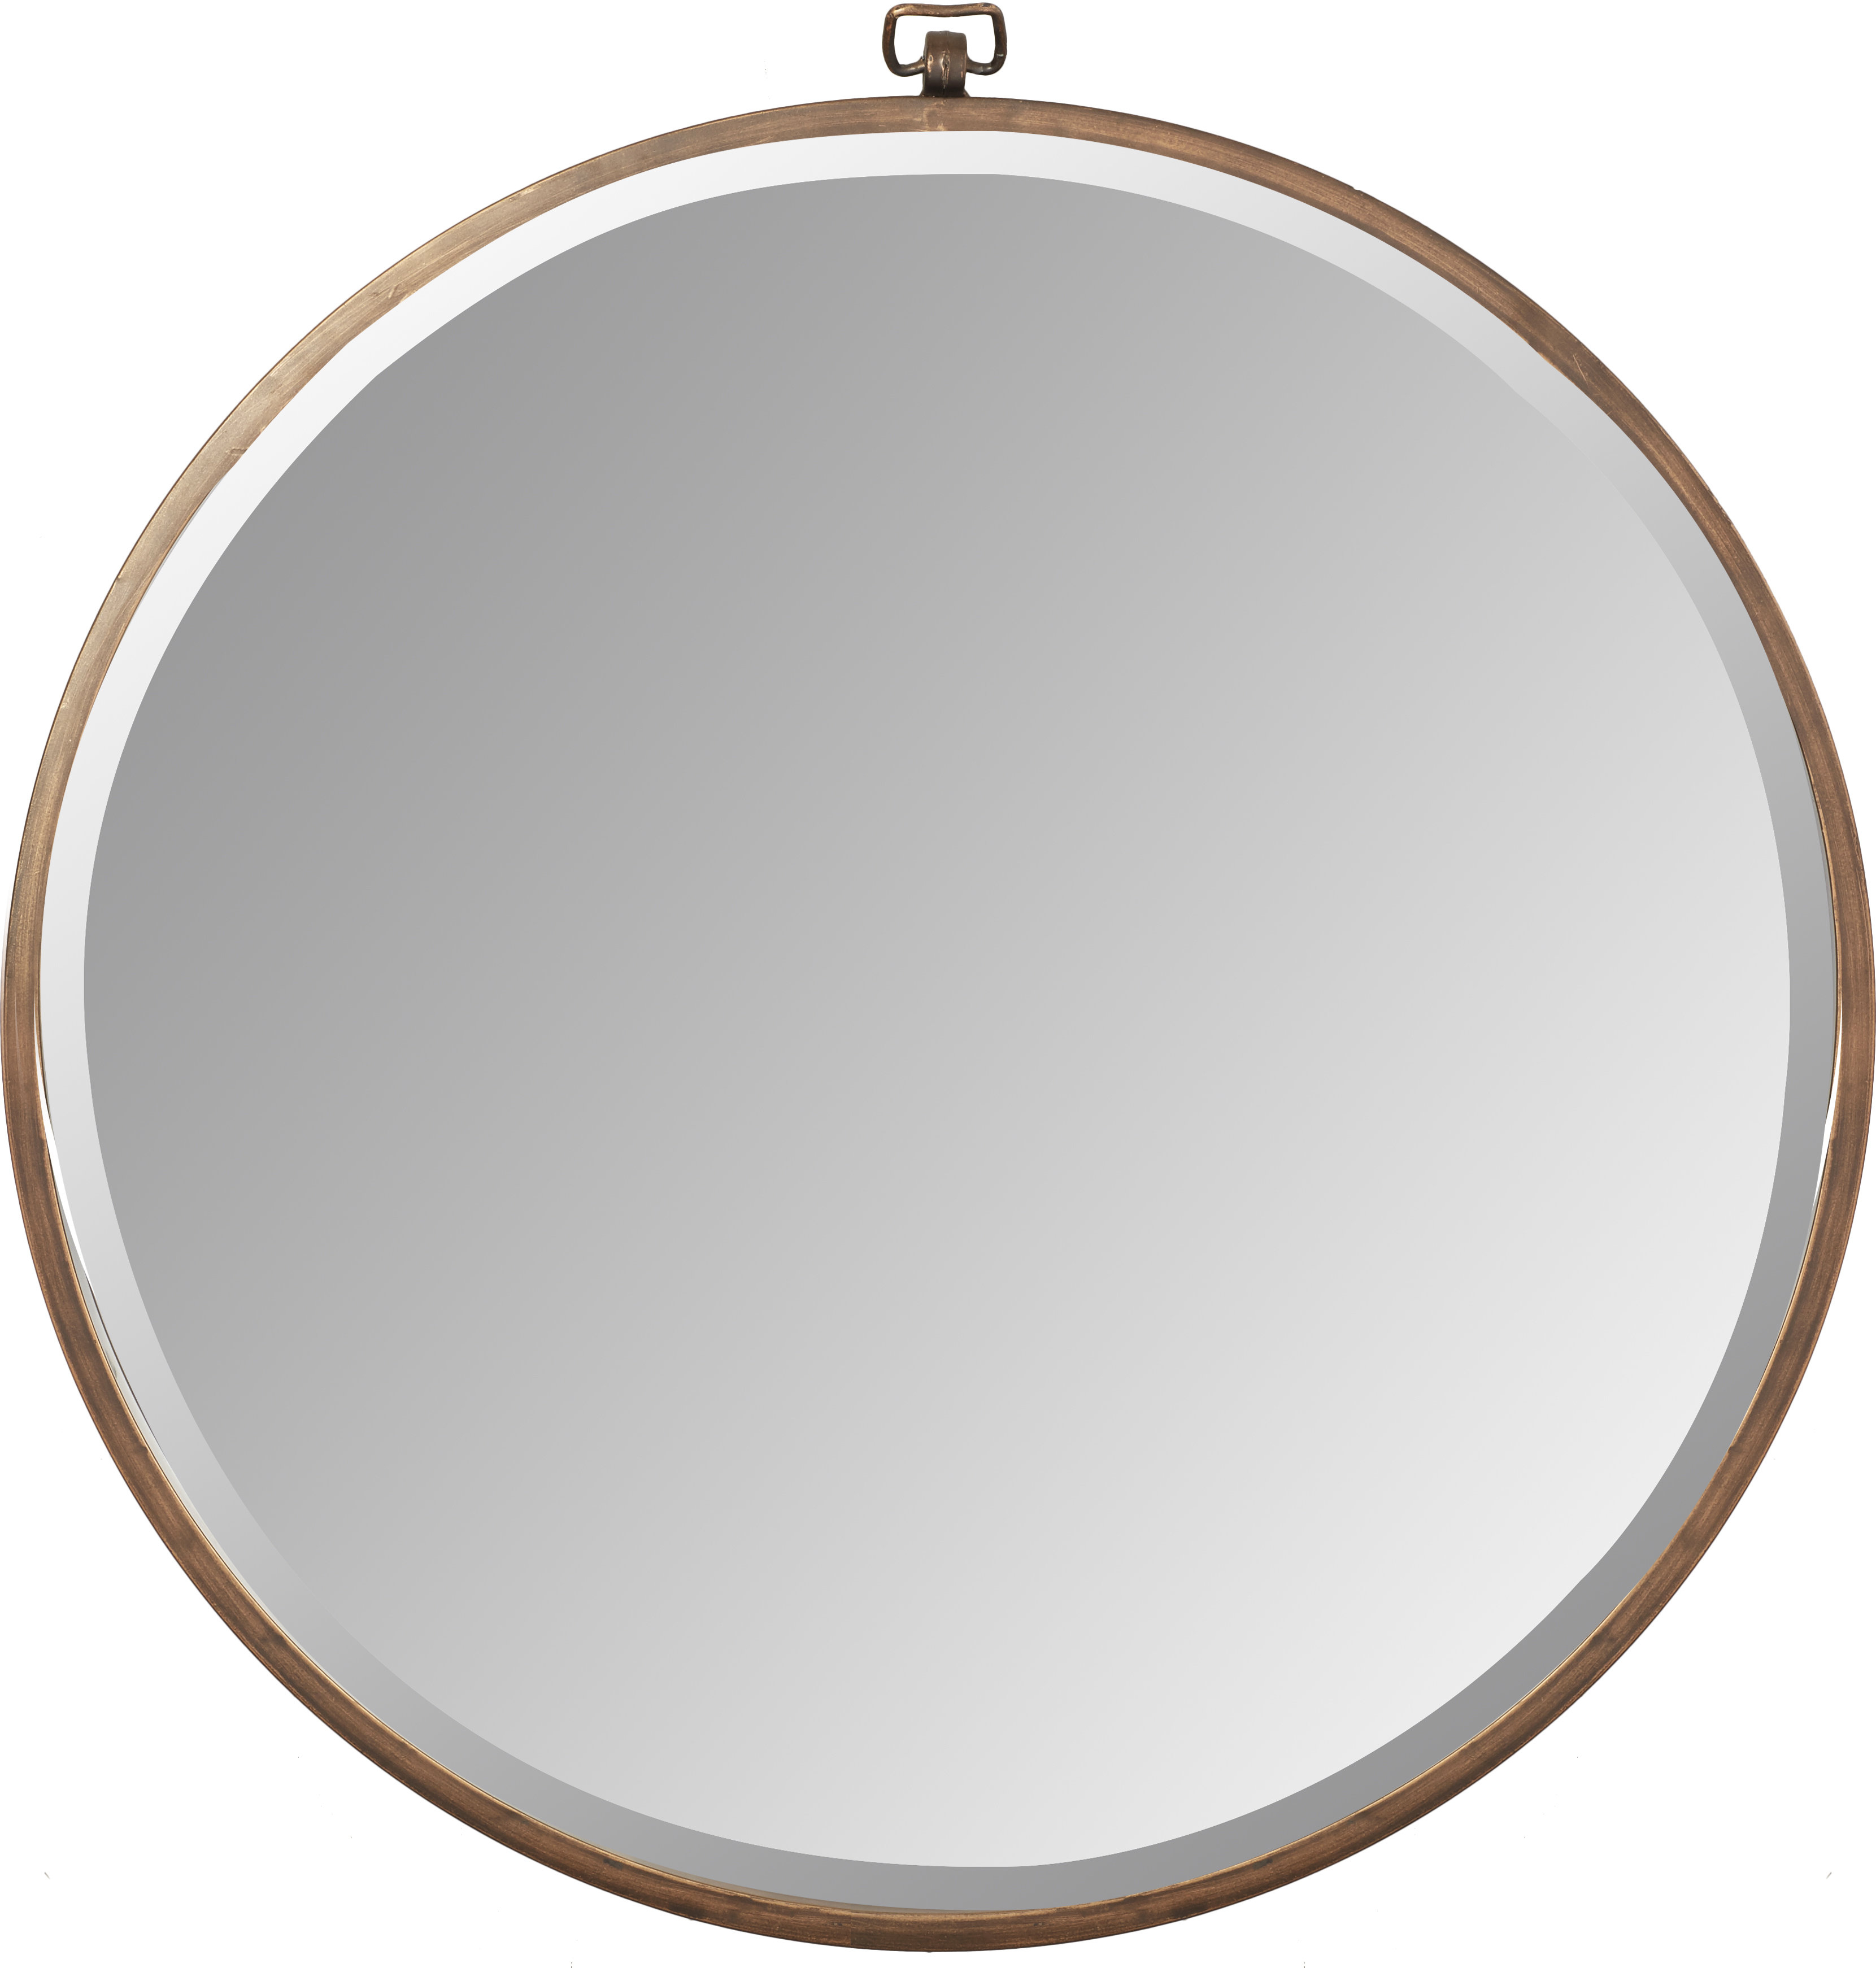 Langley Street Minerva Accent Mirror Inside Minerva Accent Mirrors (View 2 of 20)